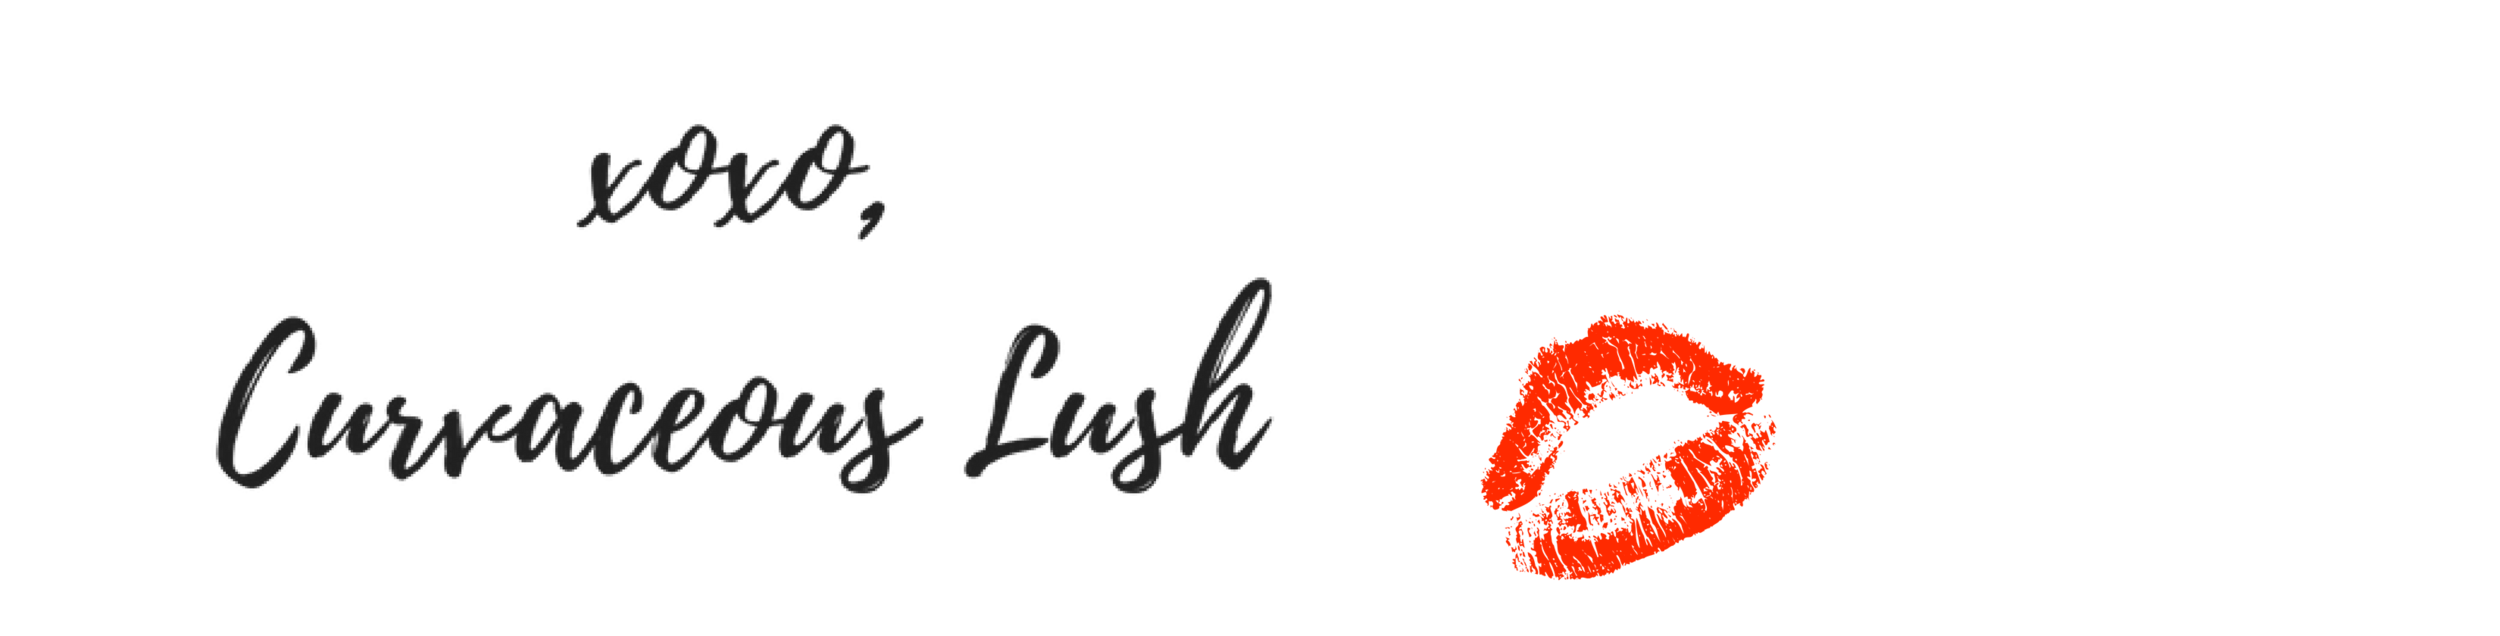 Copy of Copy of Copy of Curvaceous Lush